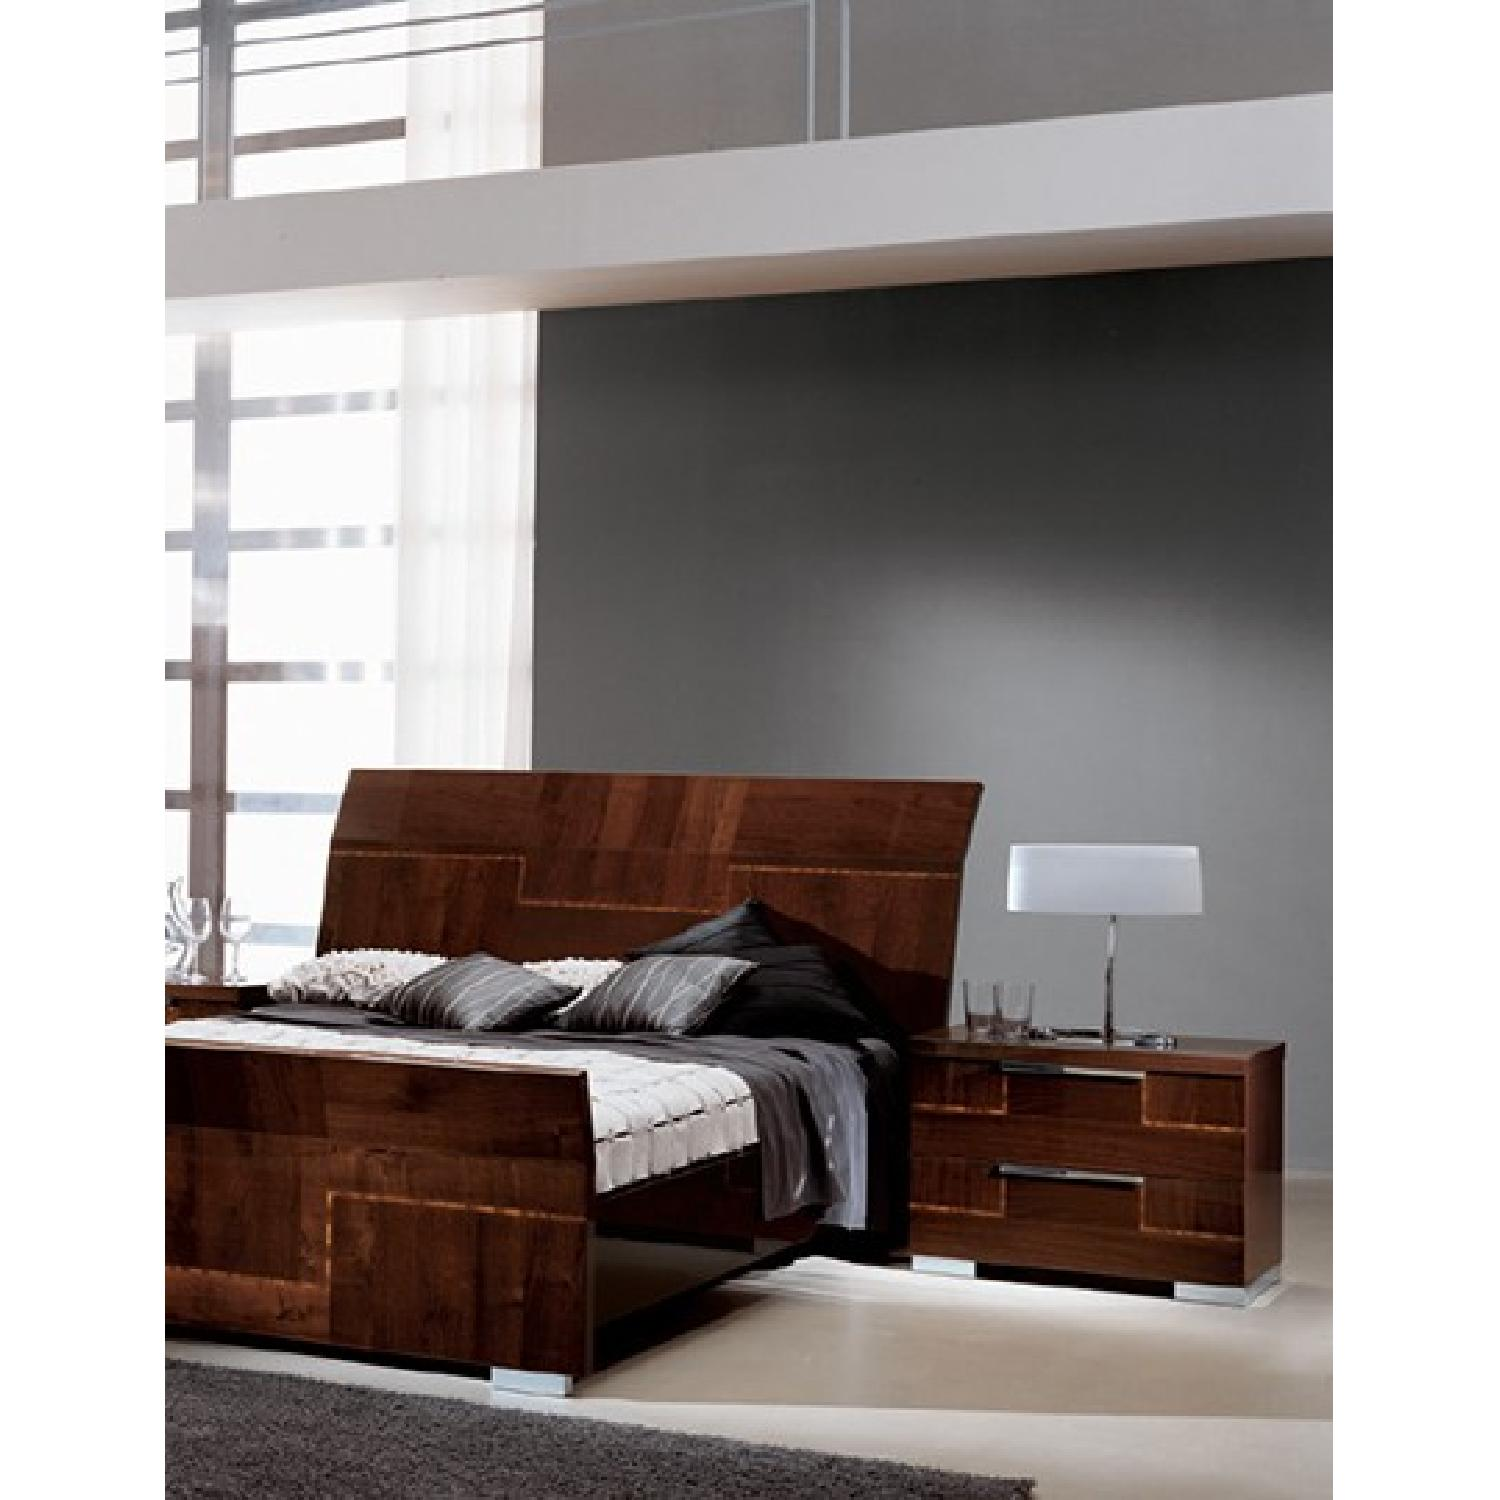 Alf King Low Profile Sleigh Bed + Dresser w/ Mirror + 2 Nighstands - image-6